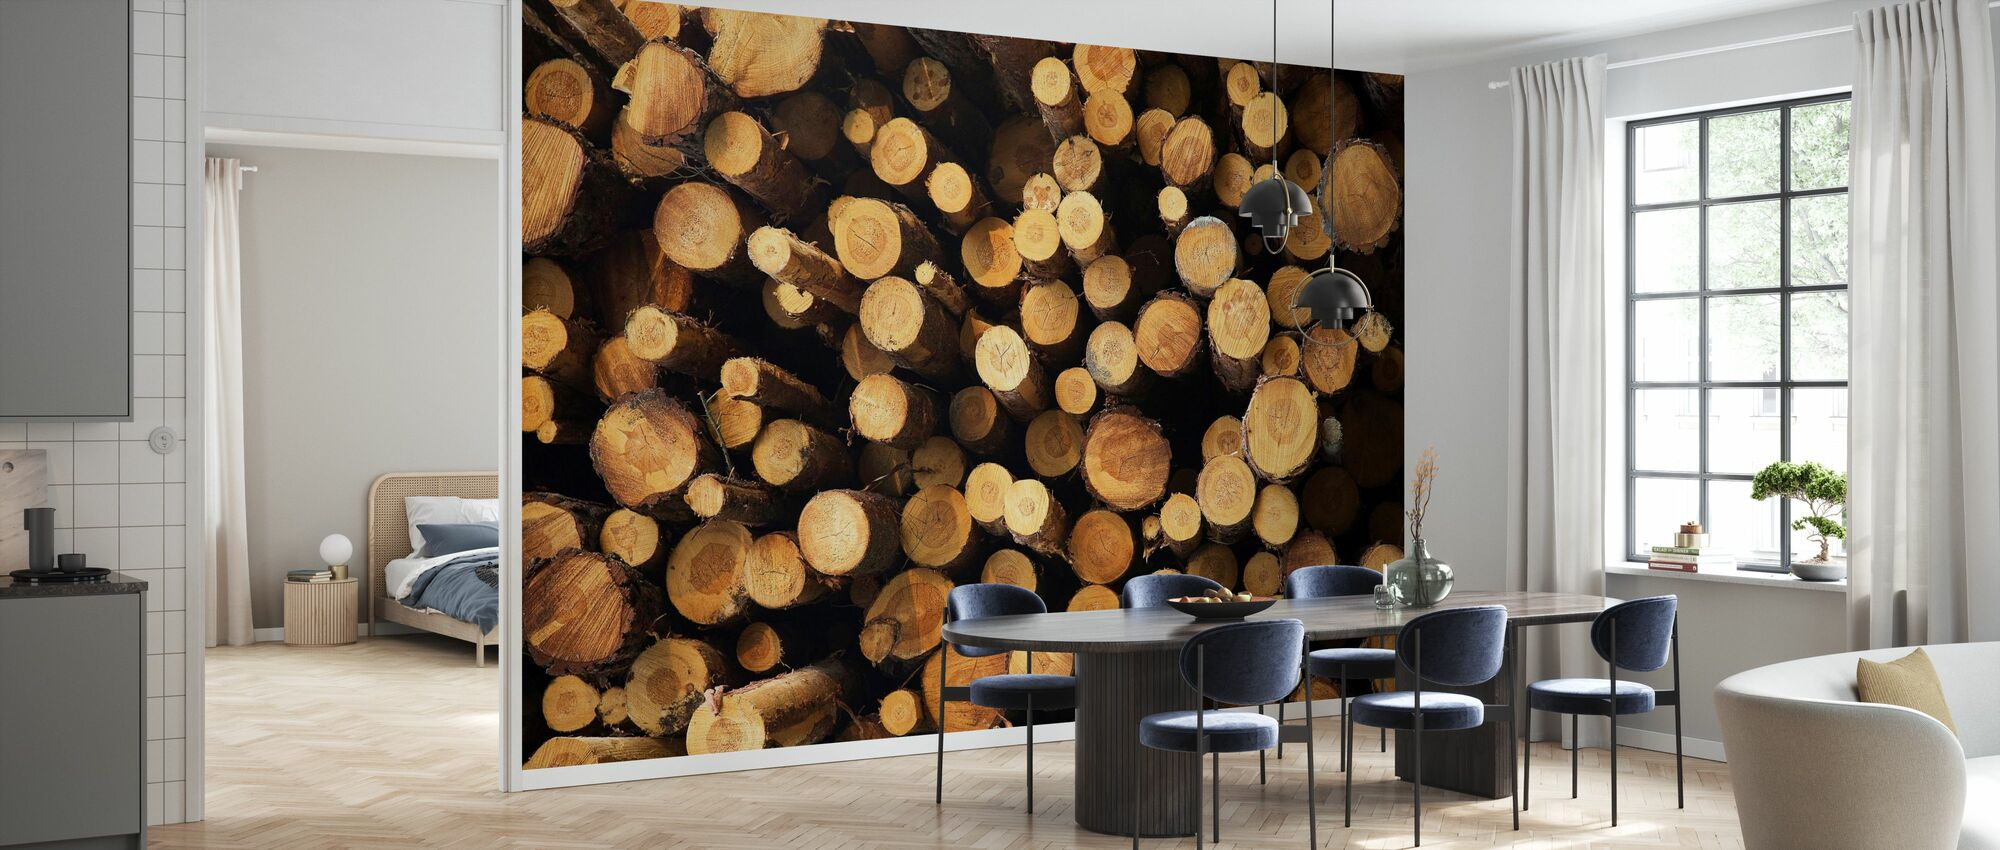 Logs - Wallpaper - Kitchen